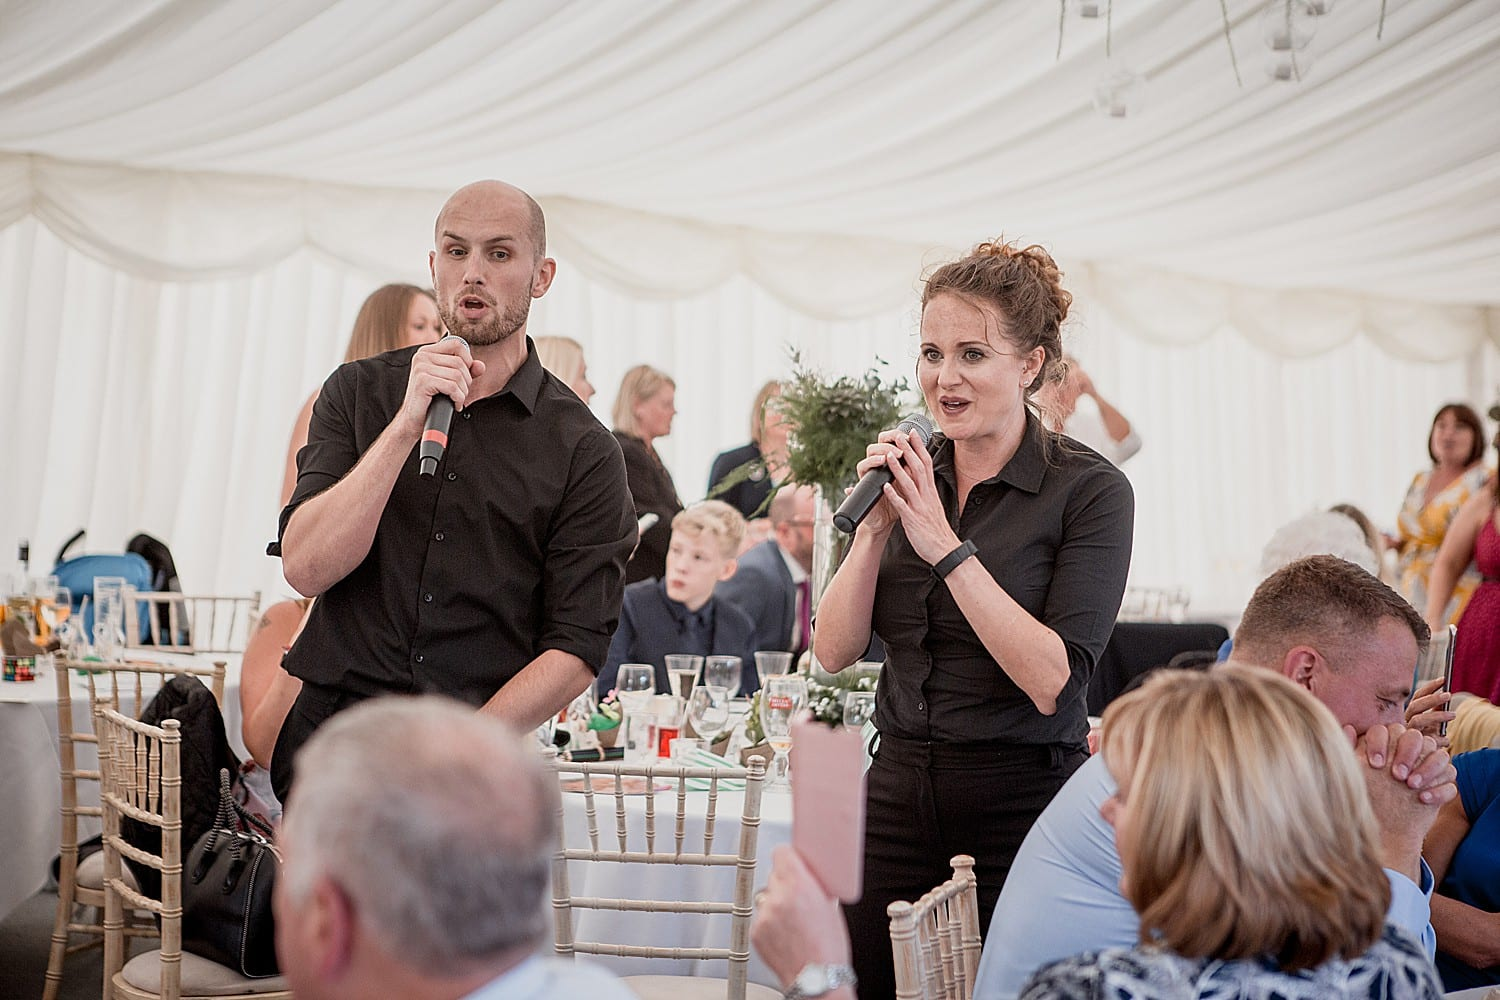 undercover singers at cheshire wedding